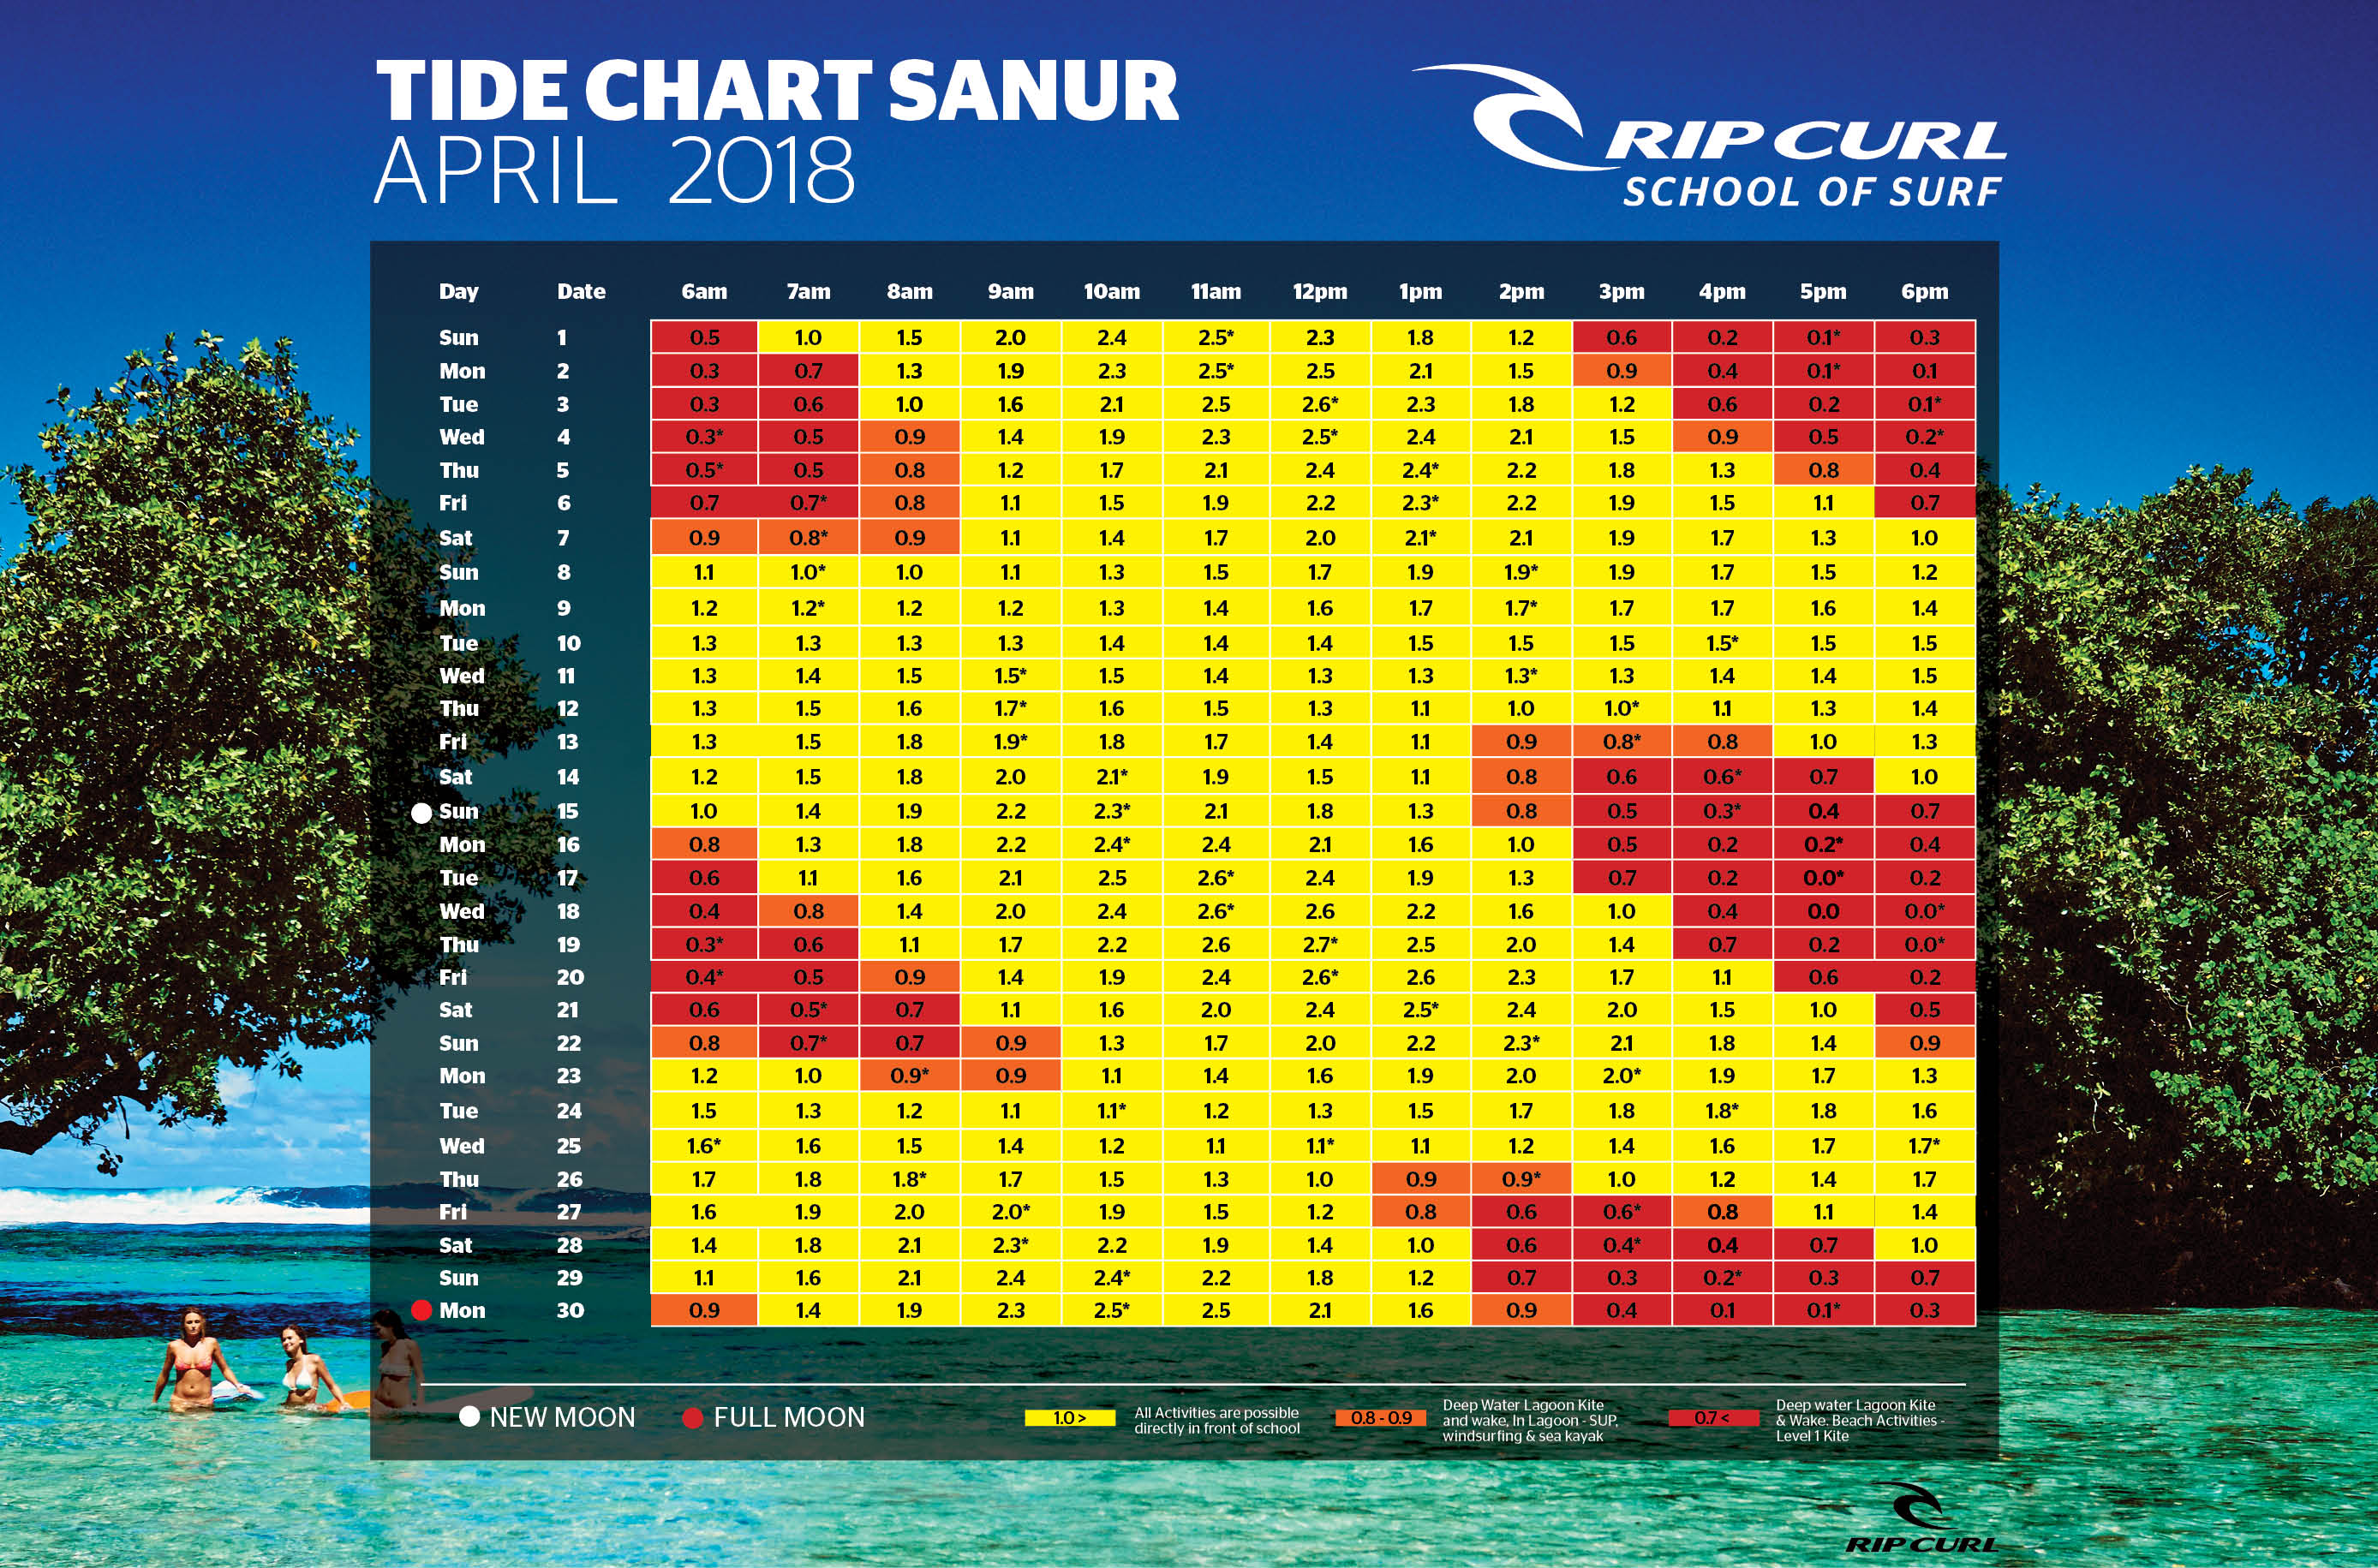 Tide chart today gallery free any chart examples tide chart sanur rip curl school of surf tide chart sanur nvjuhfo gallery geenschuldenfo Images